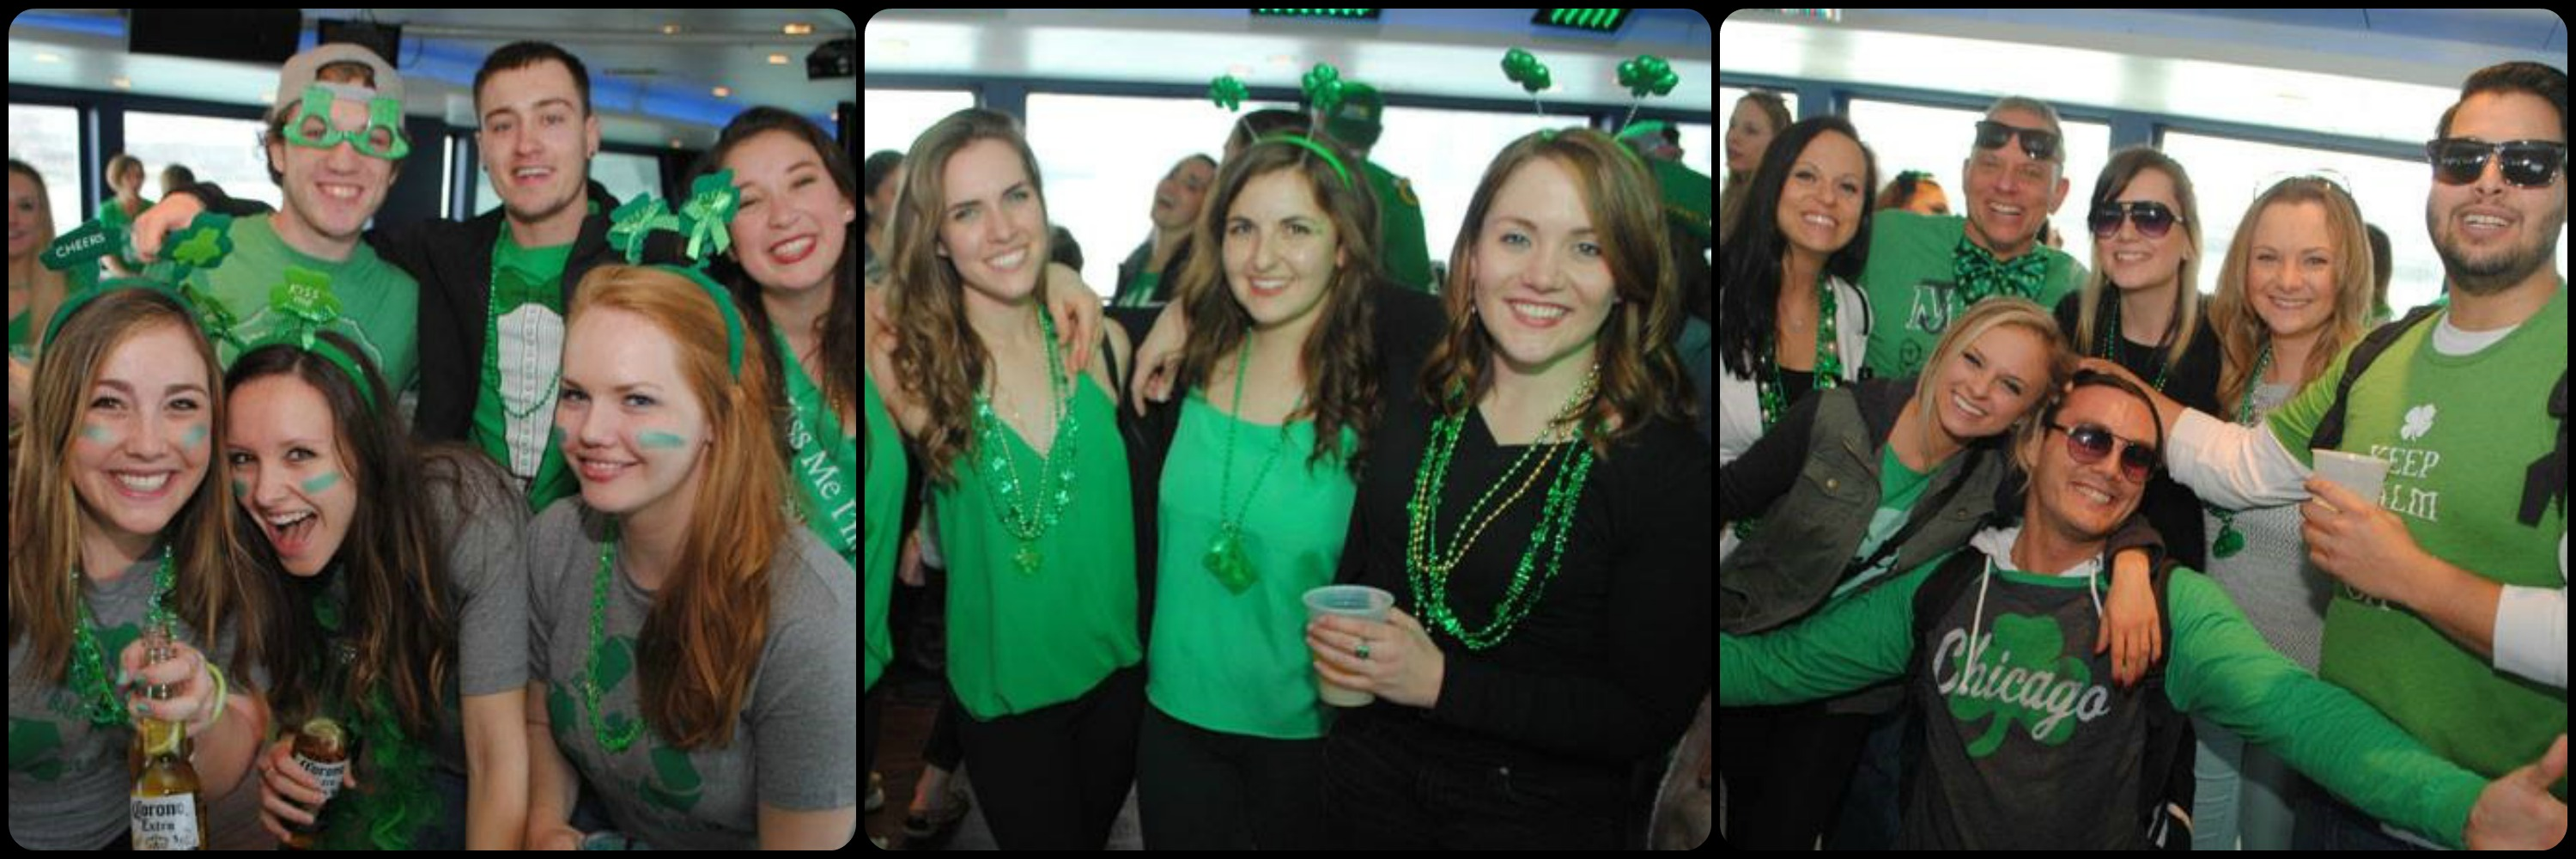 St. Patrick's Day Picture Collage